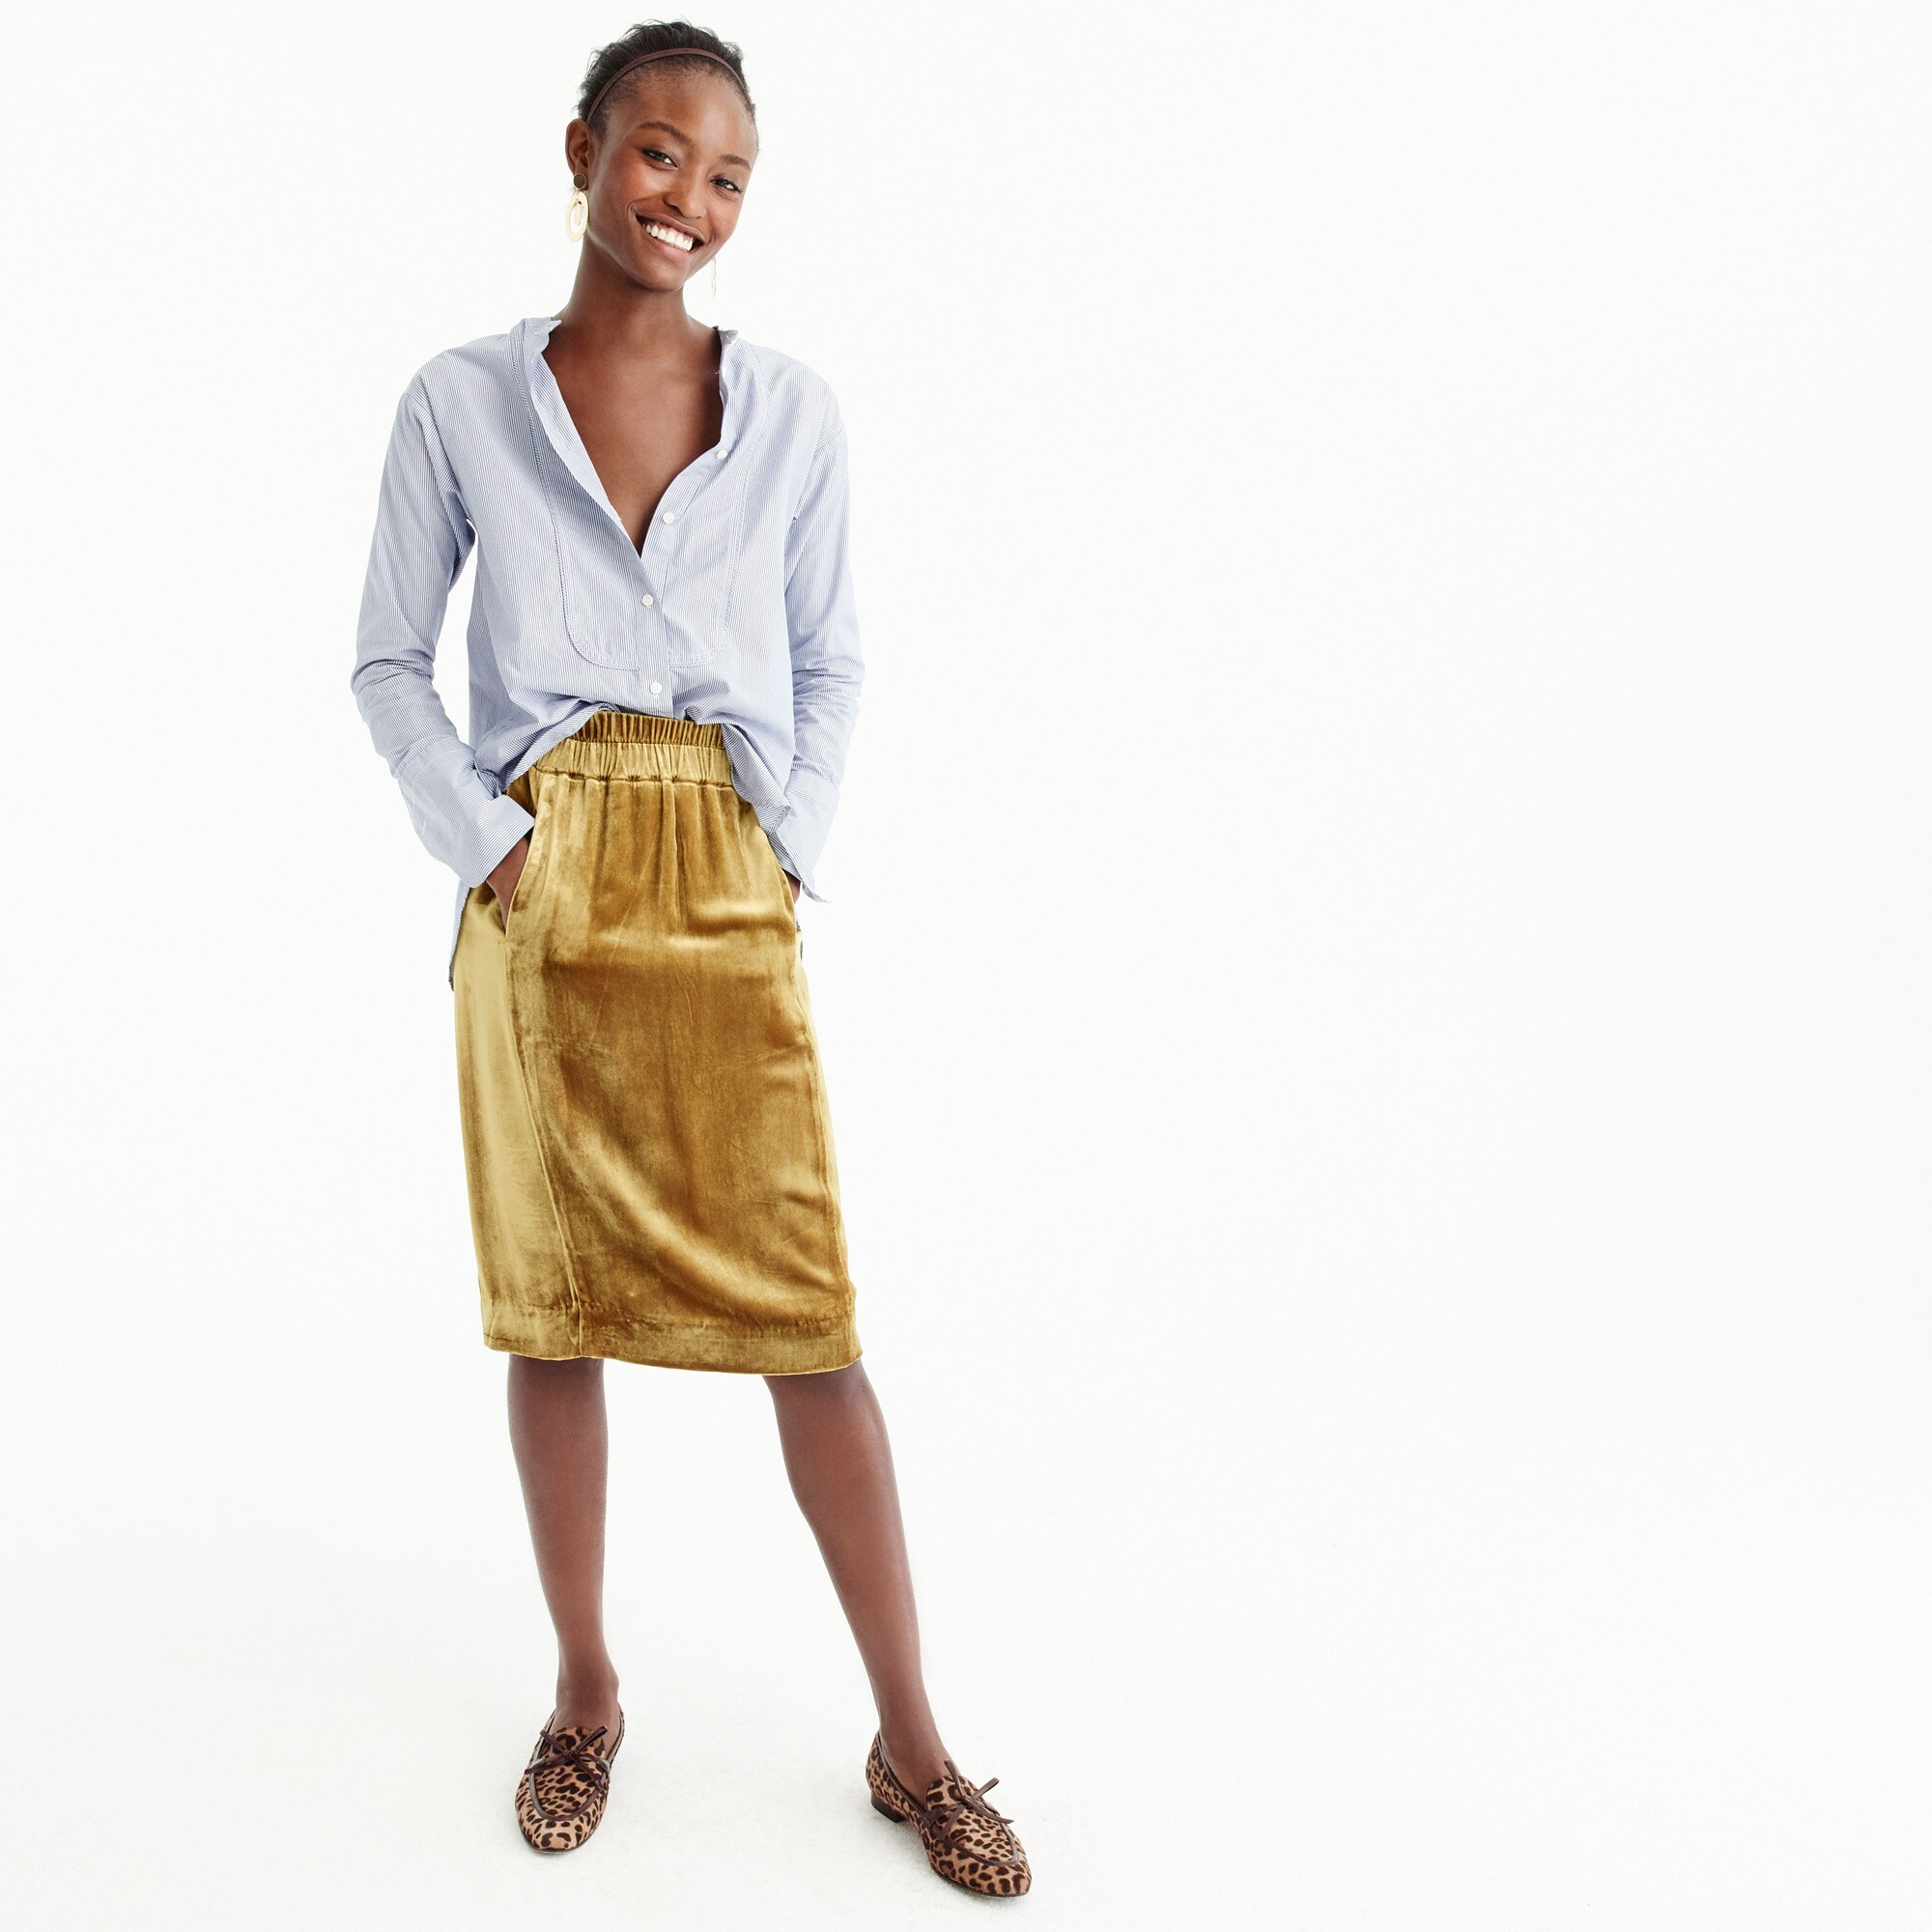 velvet pull-on skirt : women just in